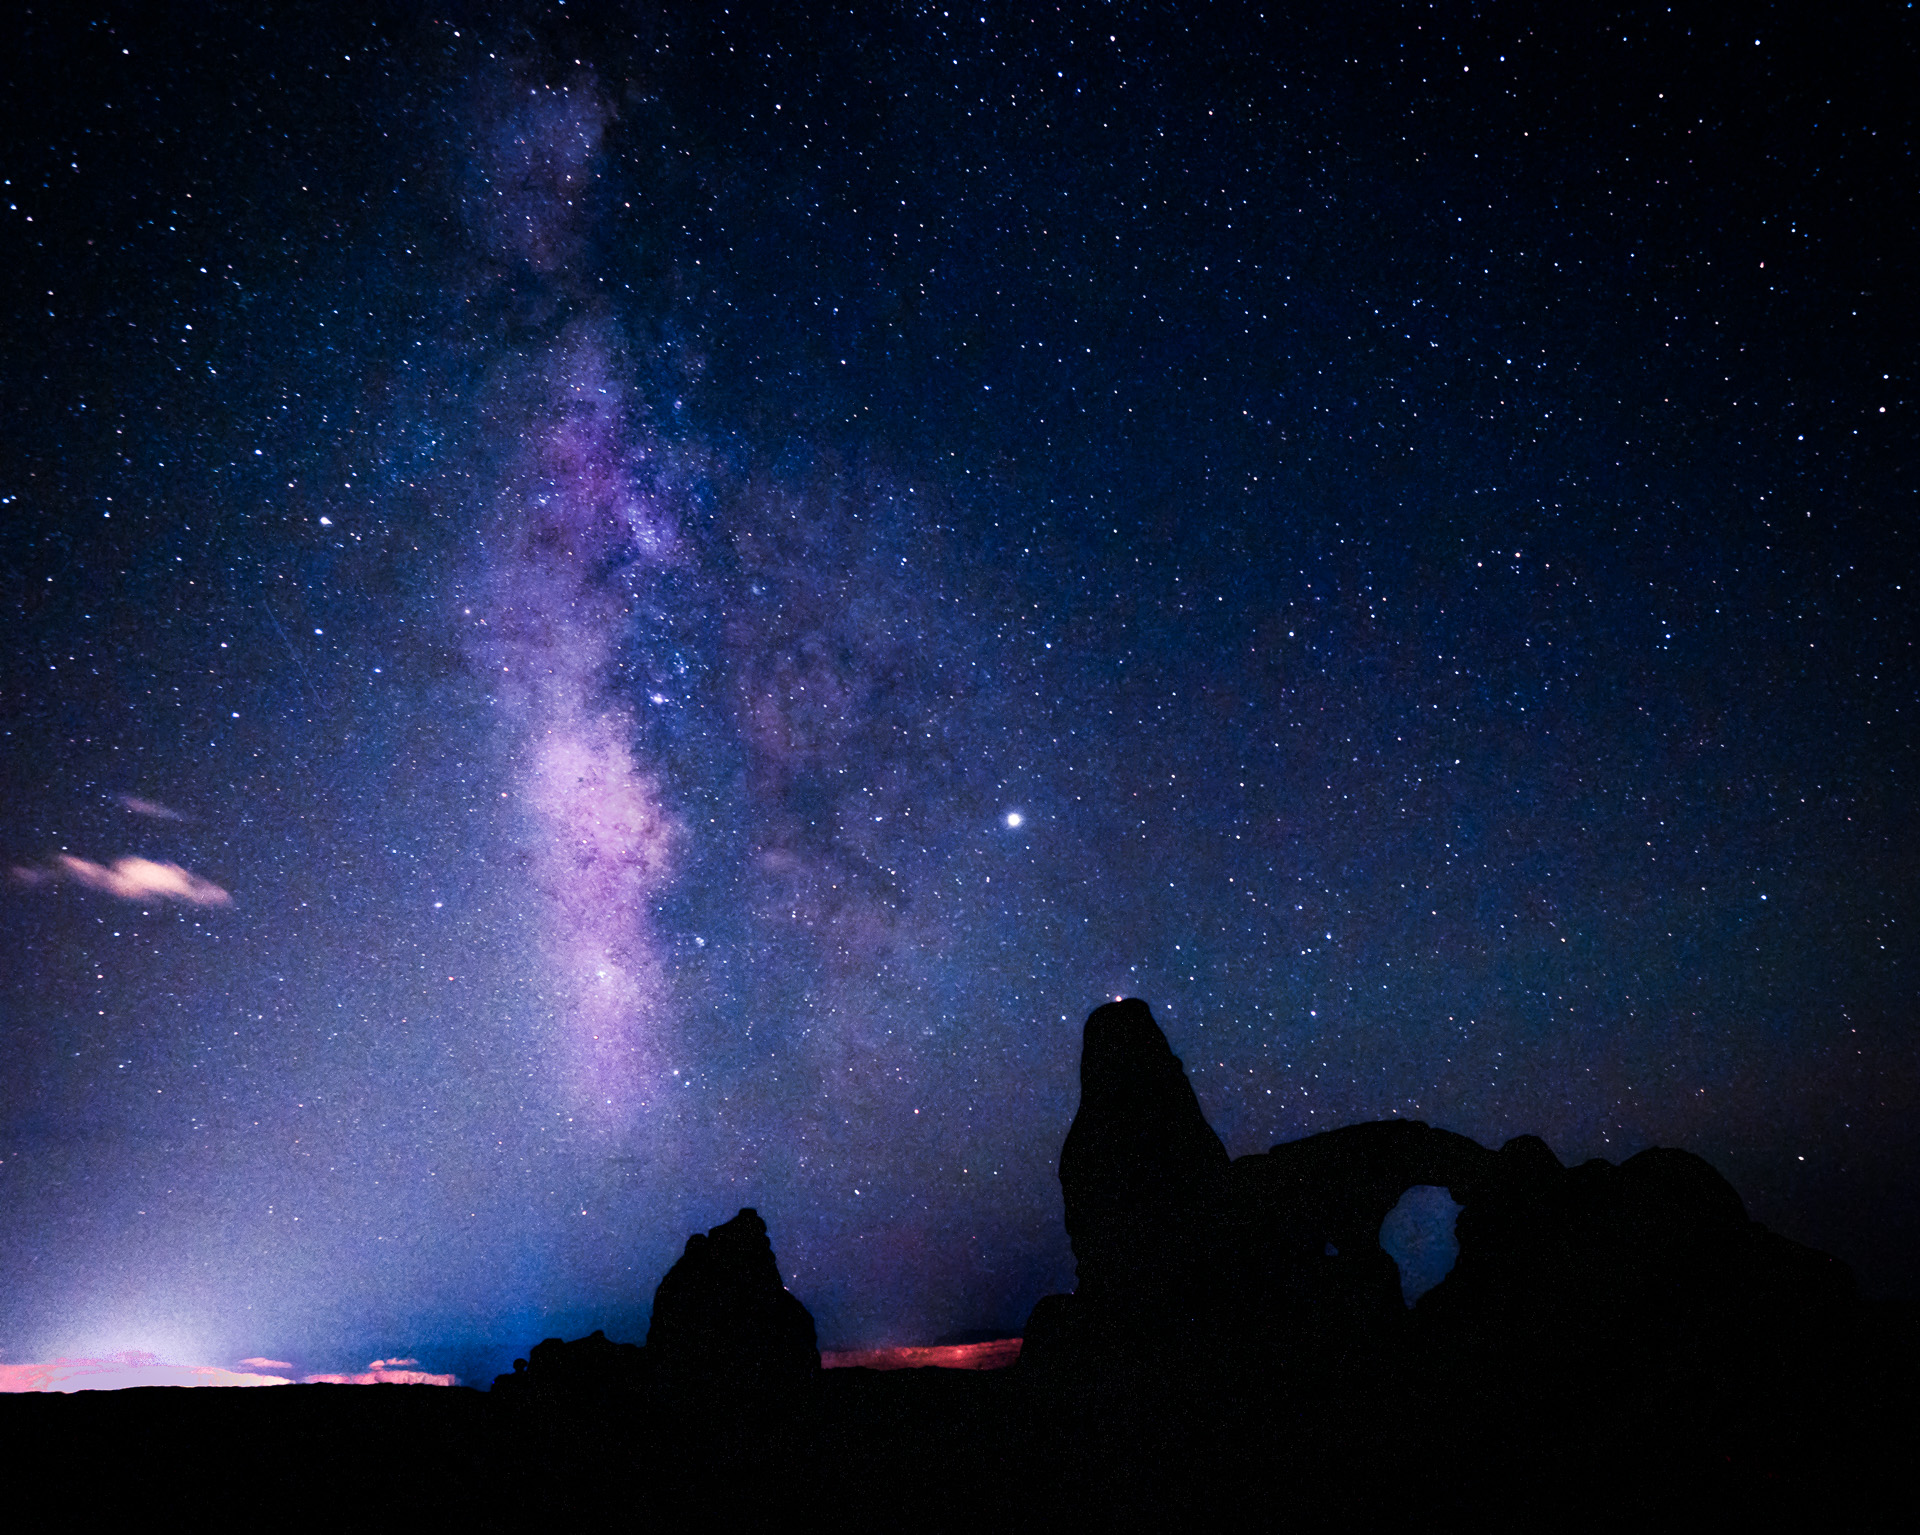 Milky Way, Arches National Park, Utah